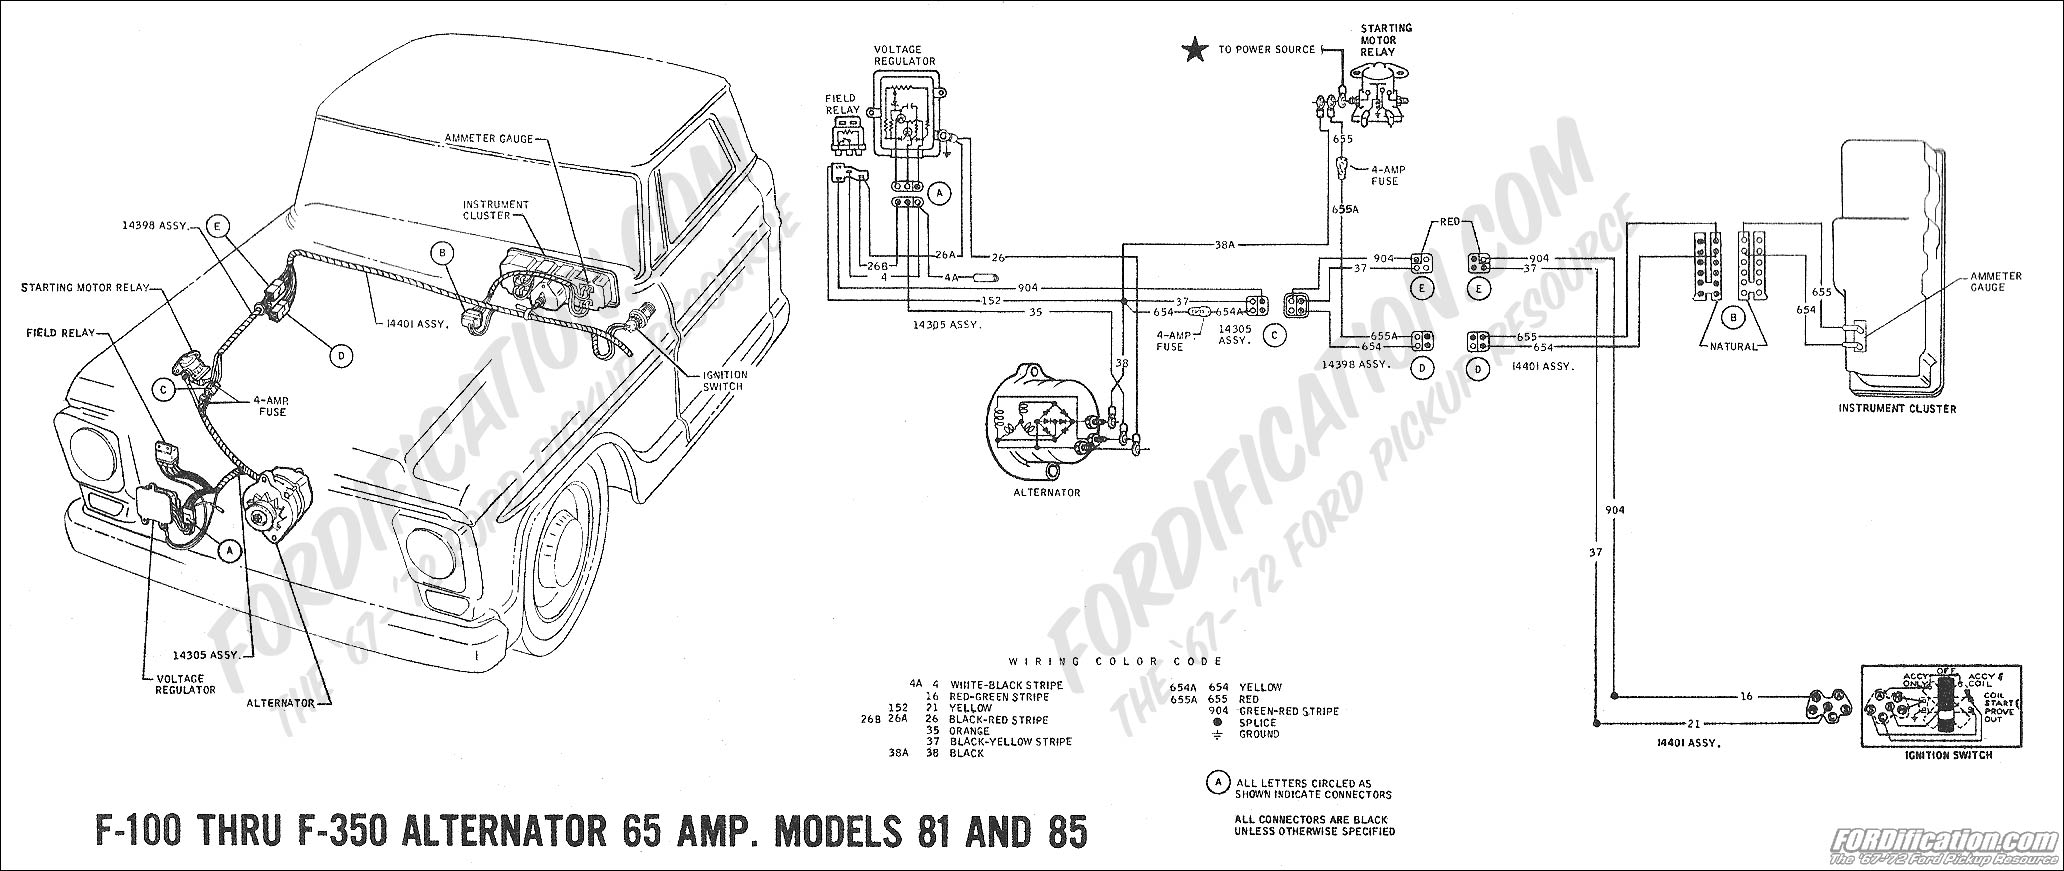 ford charging system wiring diagram single pole switch with pilot light 1976 f250